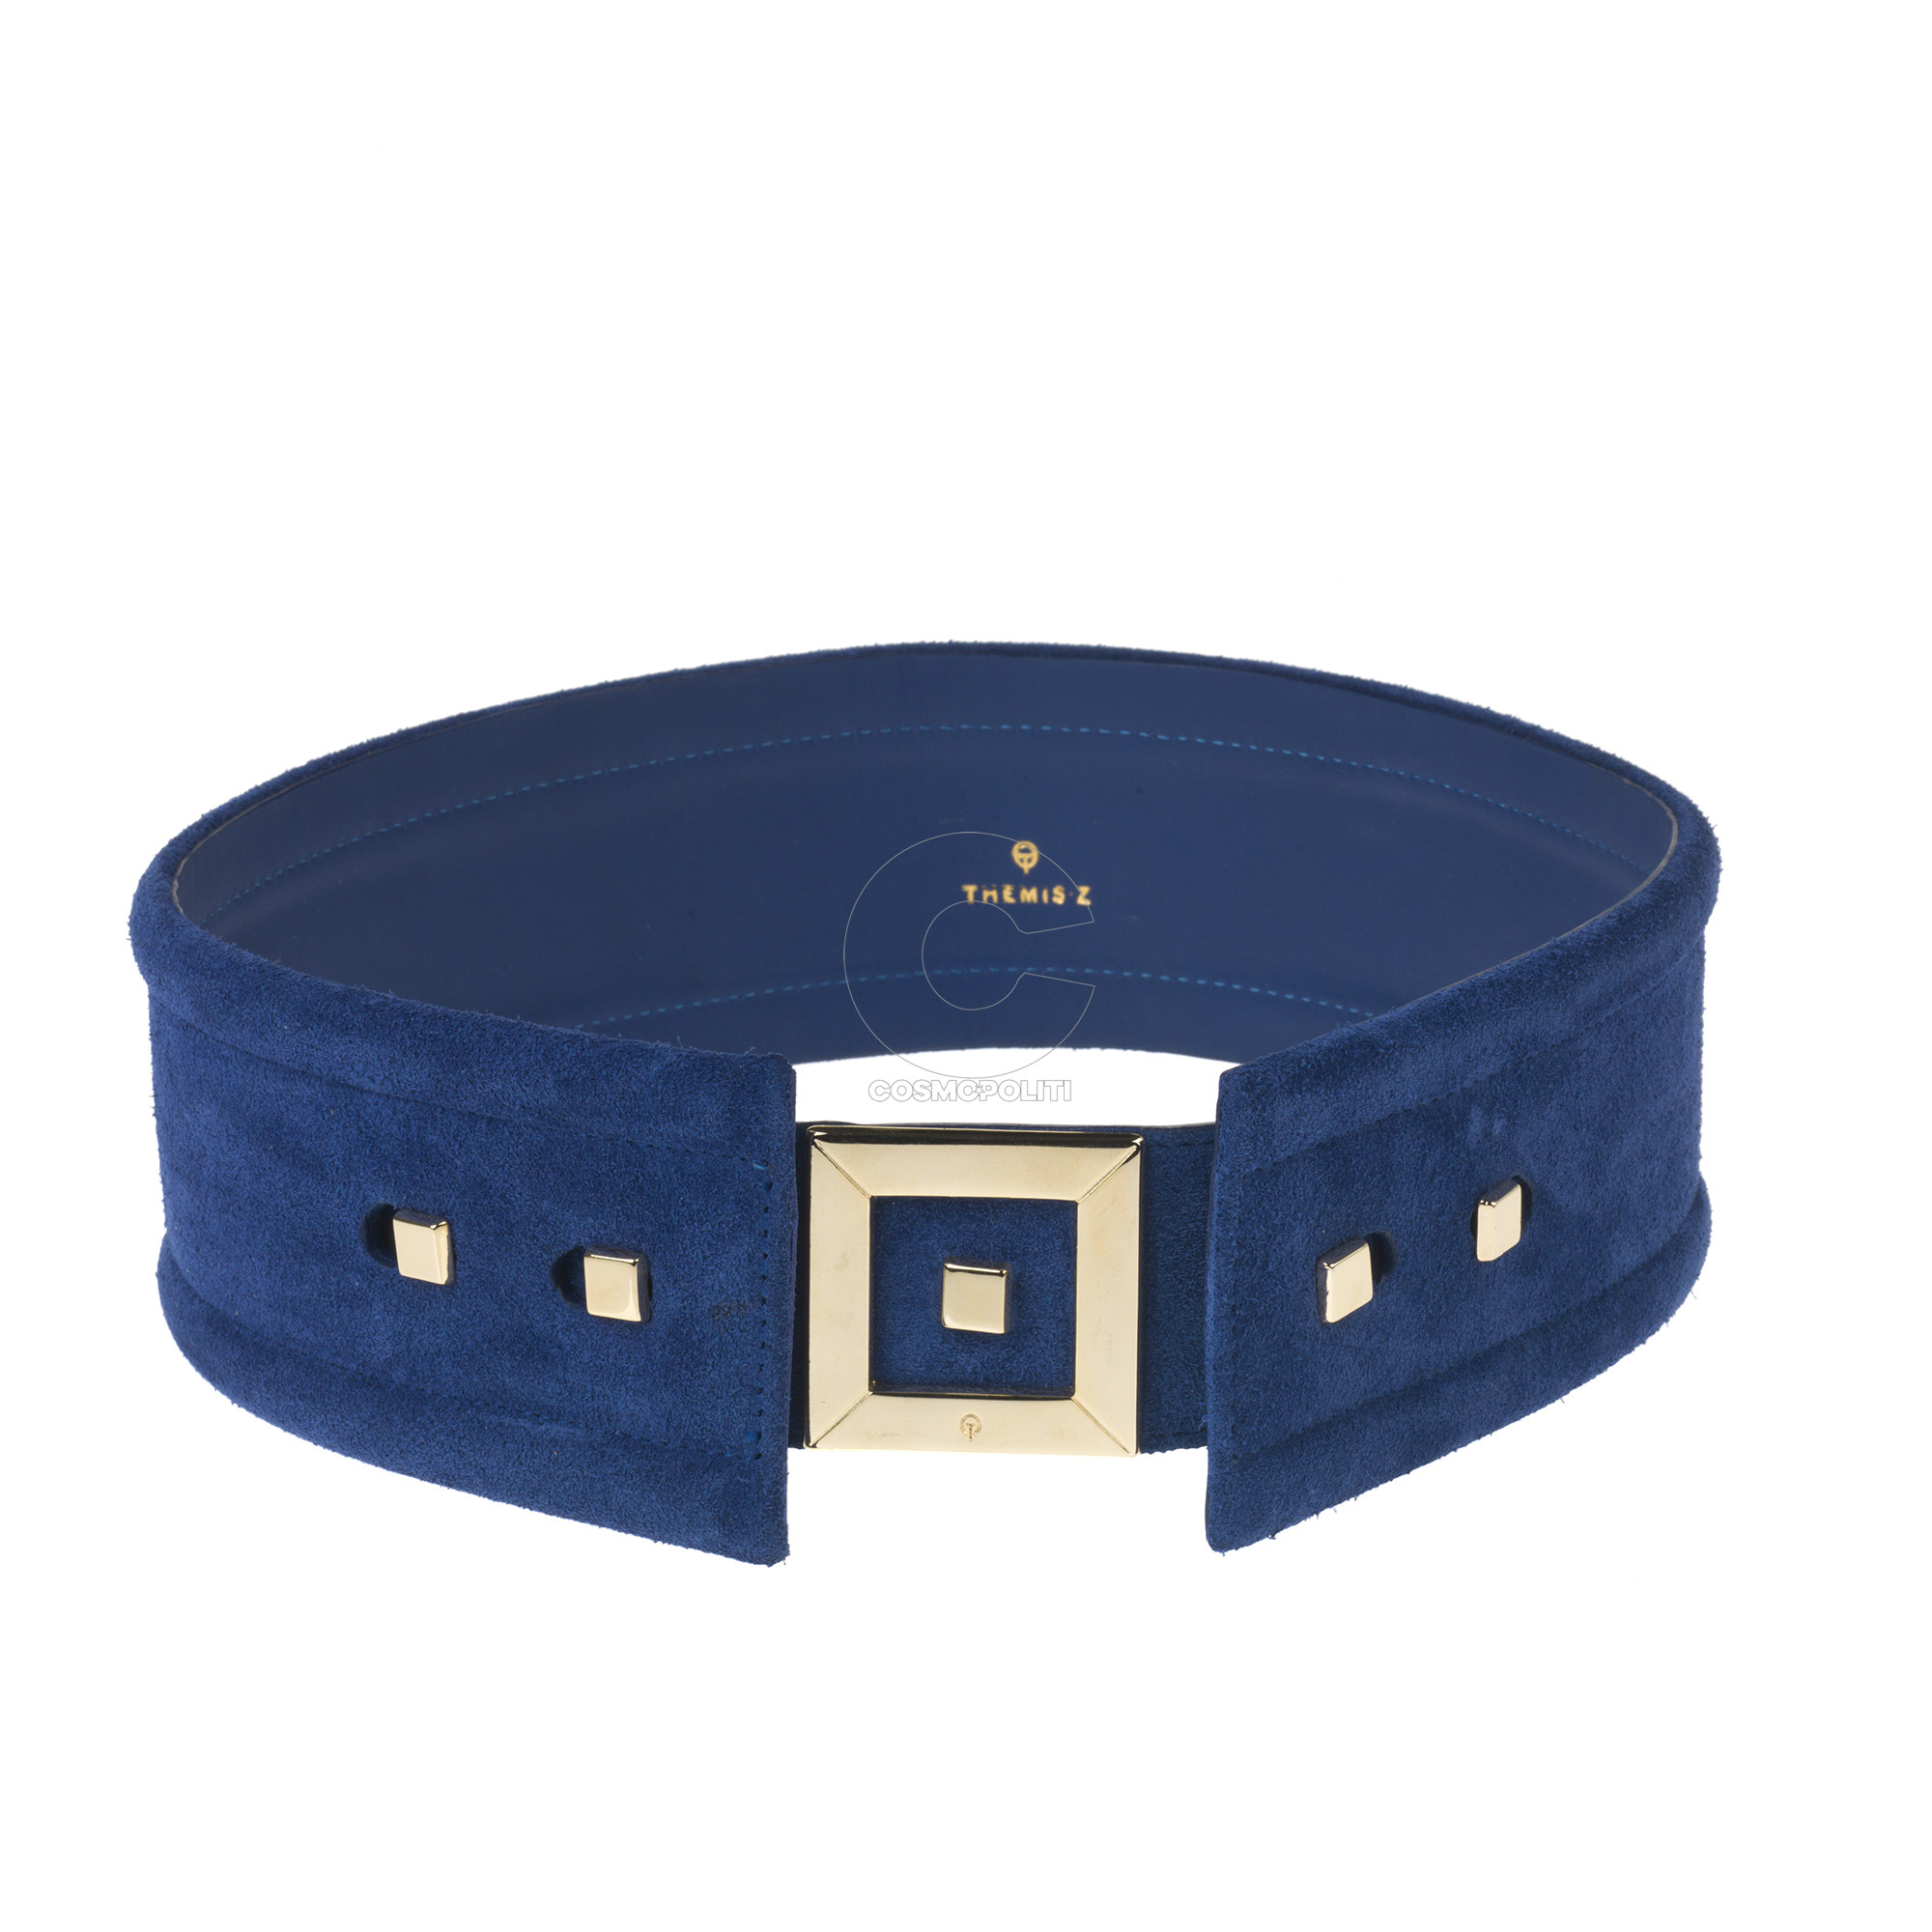 FRIDA SUEDE BELT 1